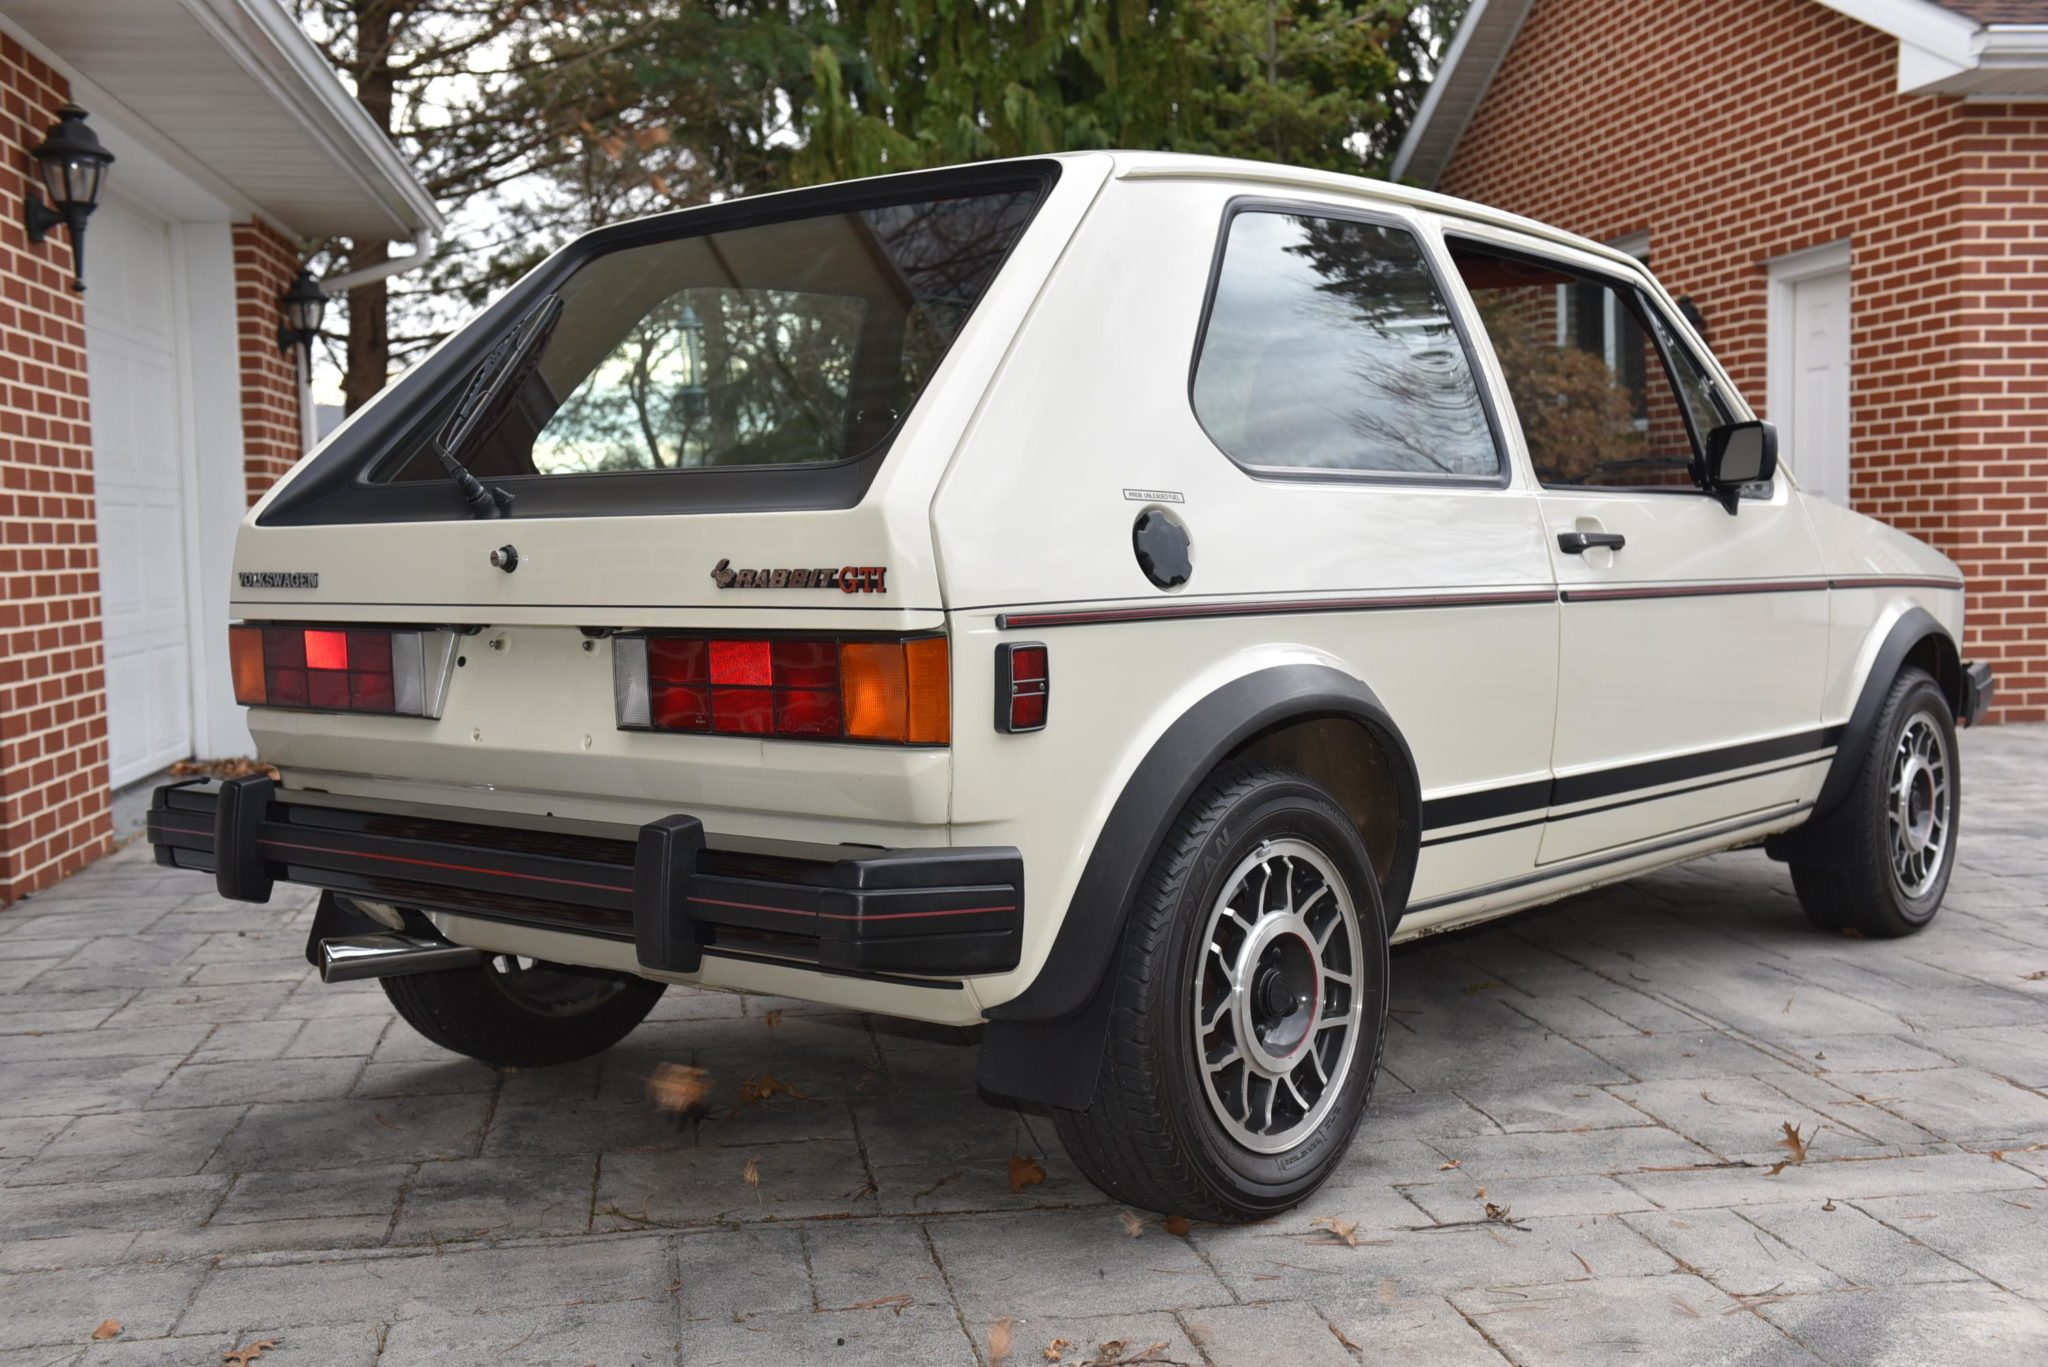 Volkswagen Rabbit GTI Callaway Turbo Stage II Rear Three-Quarter